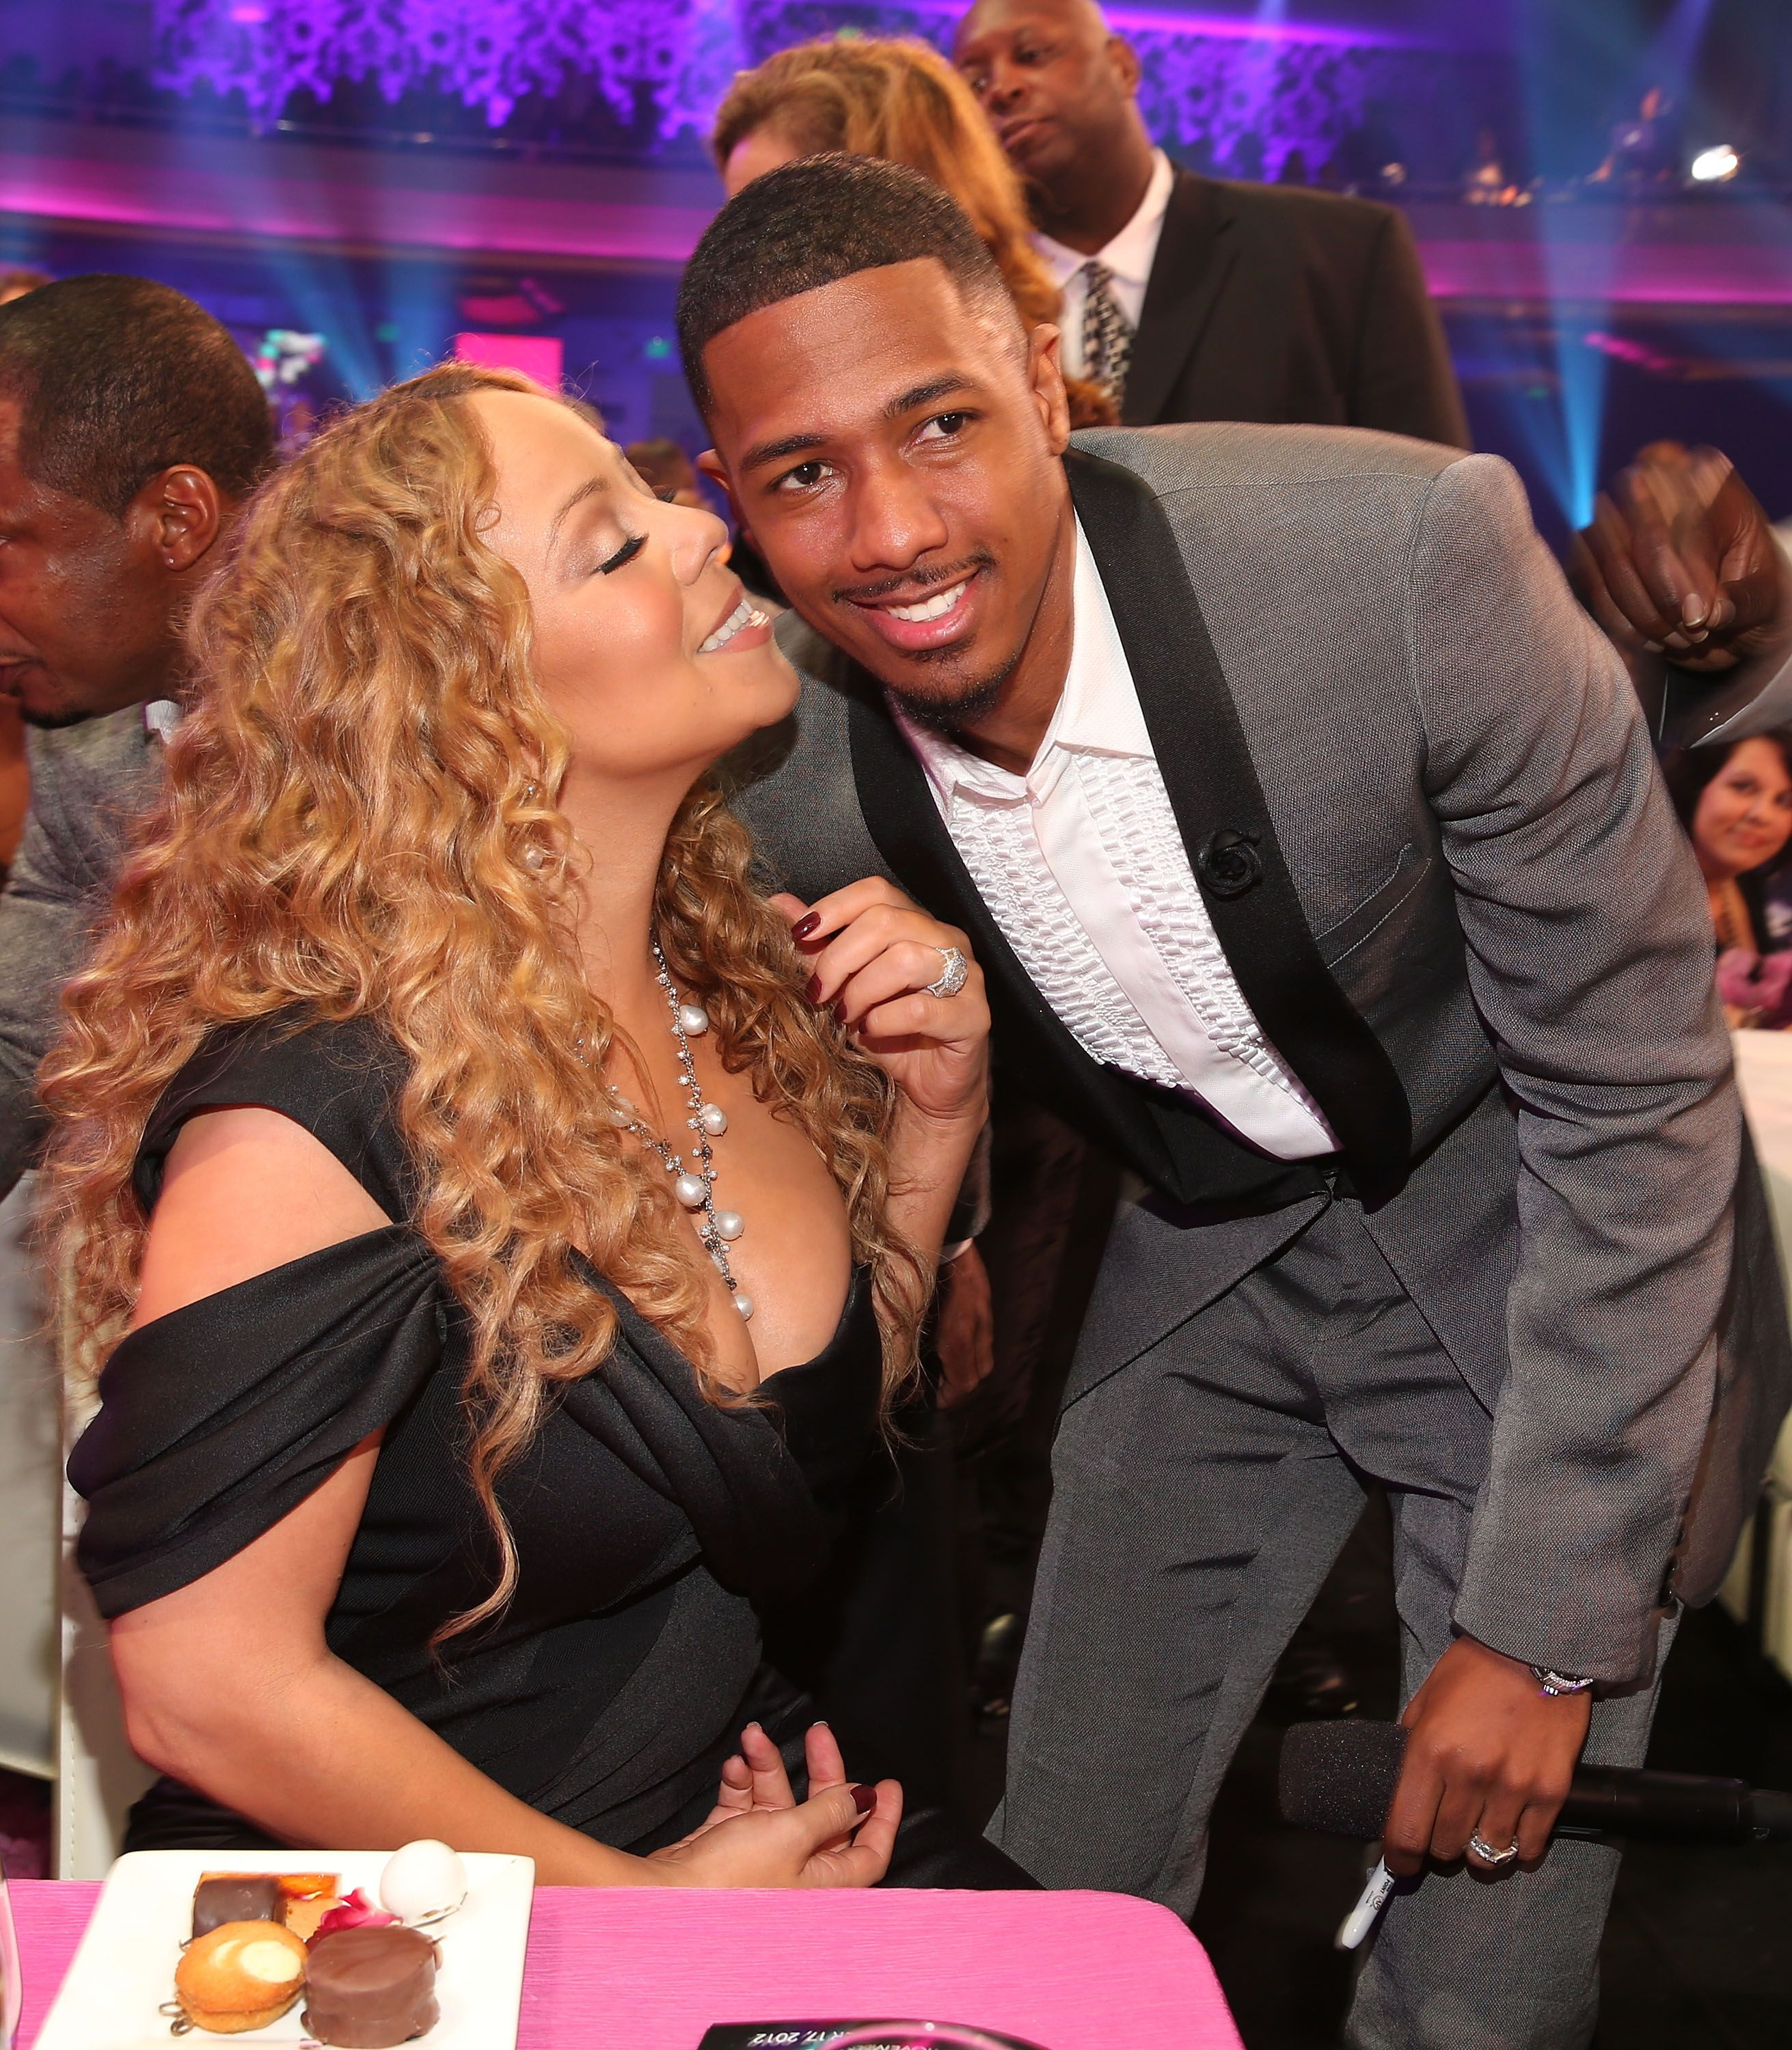 Mariah Carey and TeenNick Chairman and HALO Awards host Nick Cannon attend Nickelodeon's 2012 TeenNick HALO Awards at Hollywood Palladium on November 17, 2012 in Hollywood, California.   Source: Getty Images